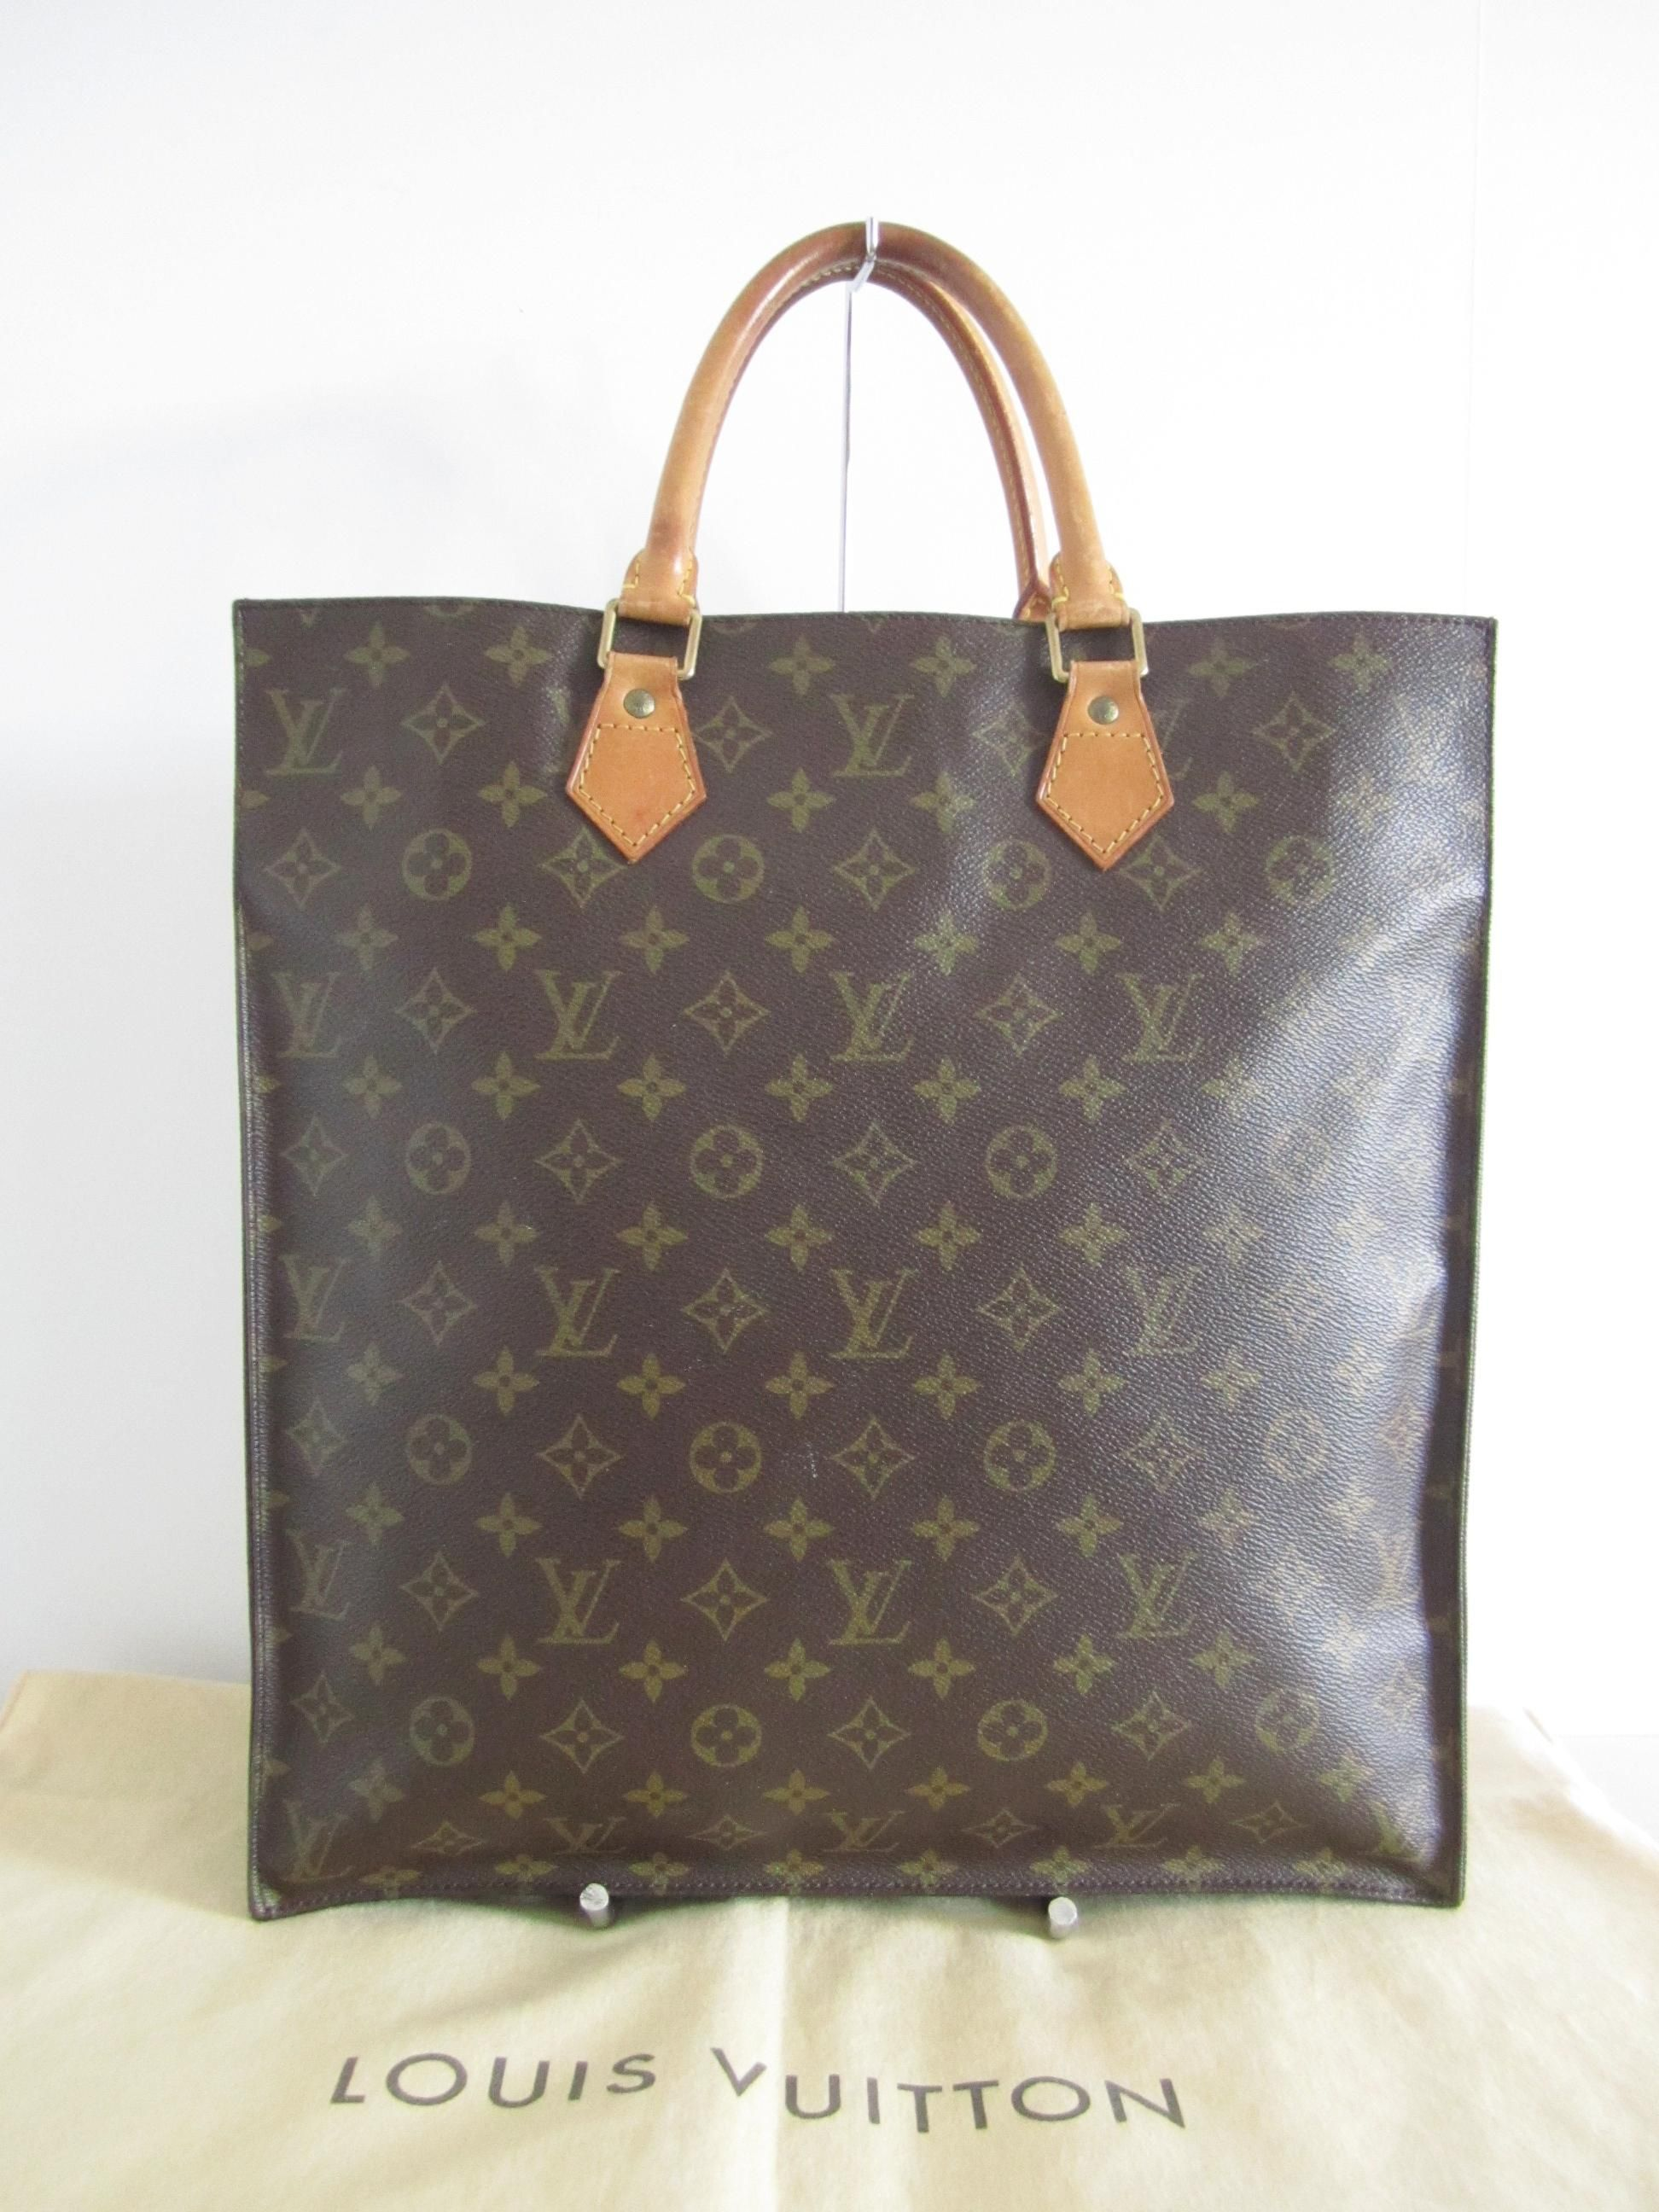 9afd23156b2a Louis Vuitton Sac Plat Gm Monogram Tote Bag. Get one of the hottest styles  of the season! The Louis Vuitton Sac Plat Gm Monogram Tote Bag is a top 10  member ...